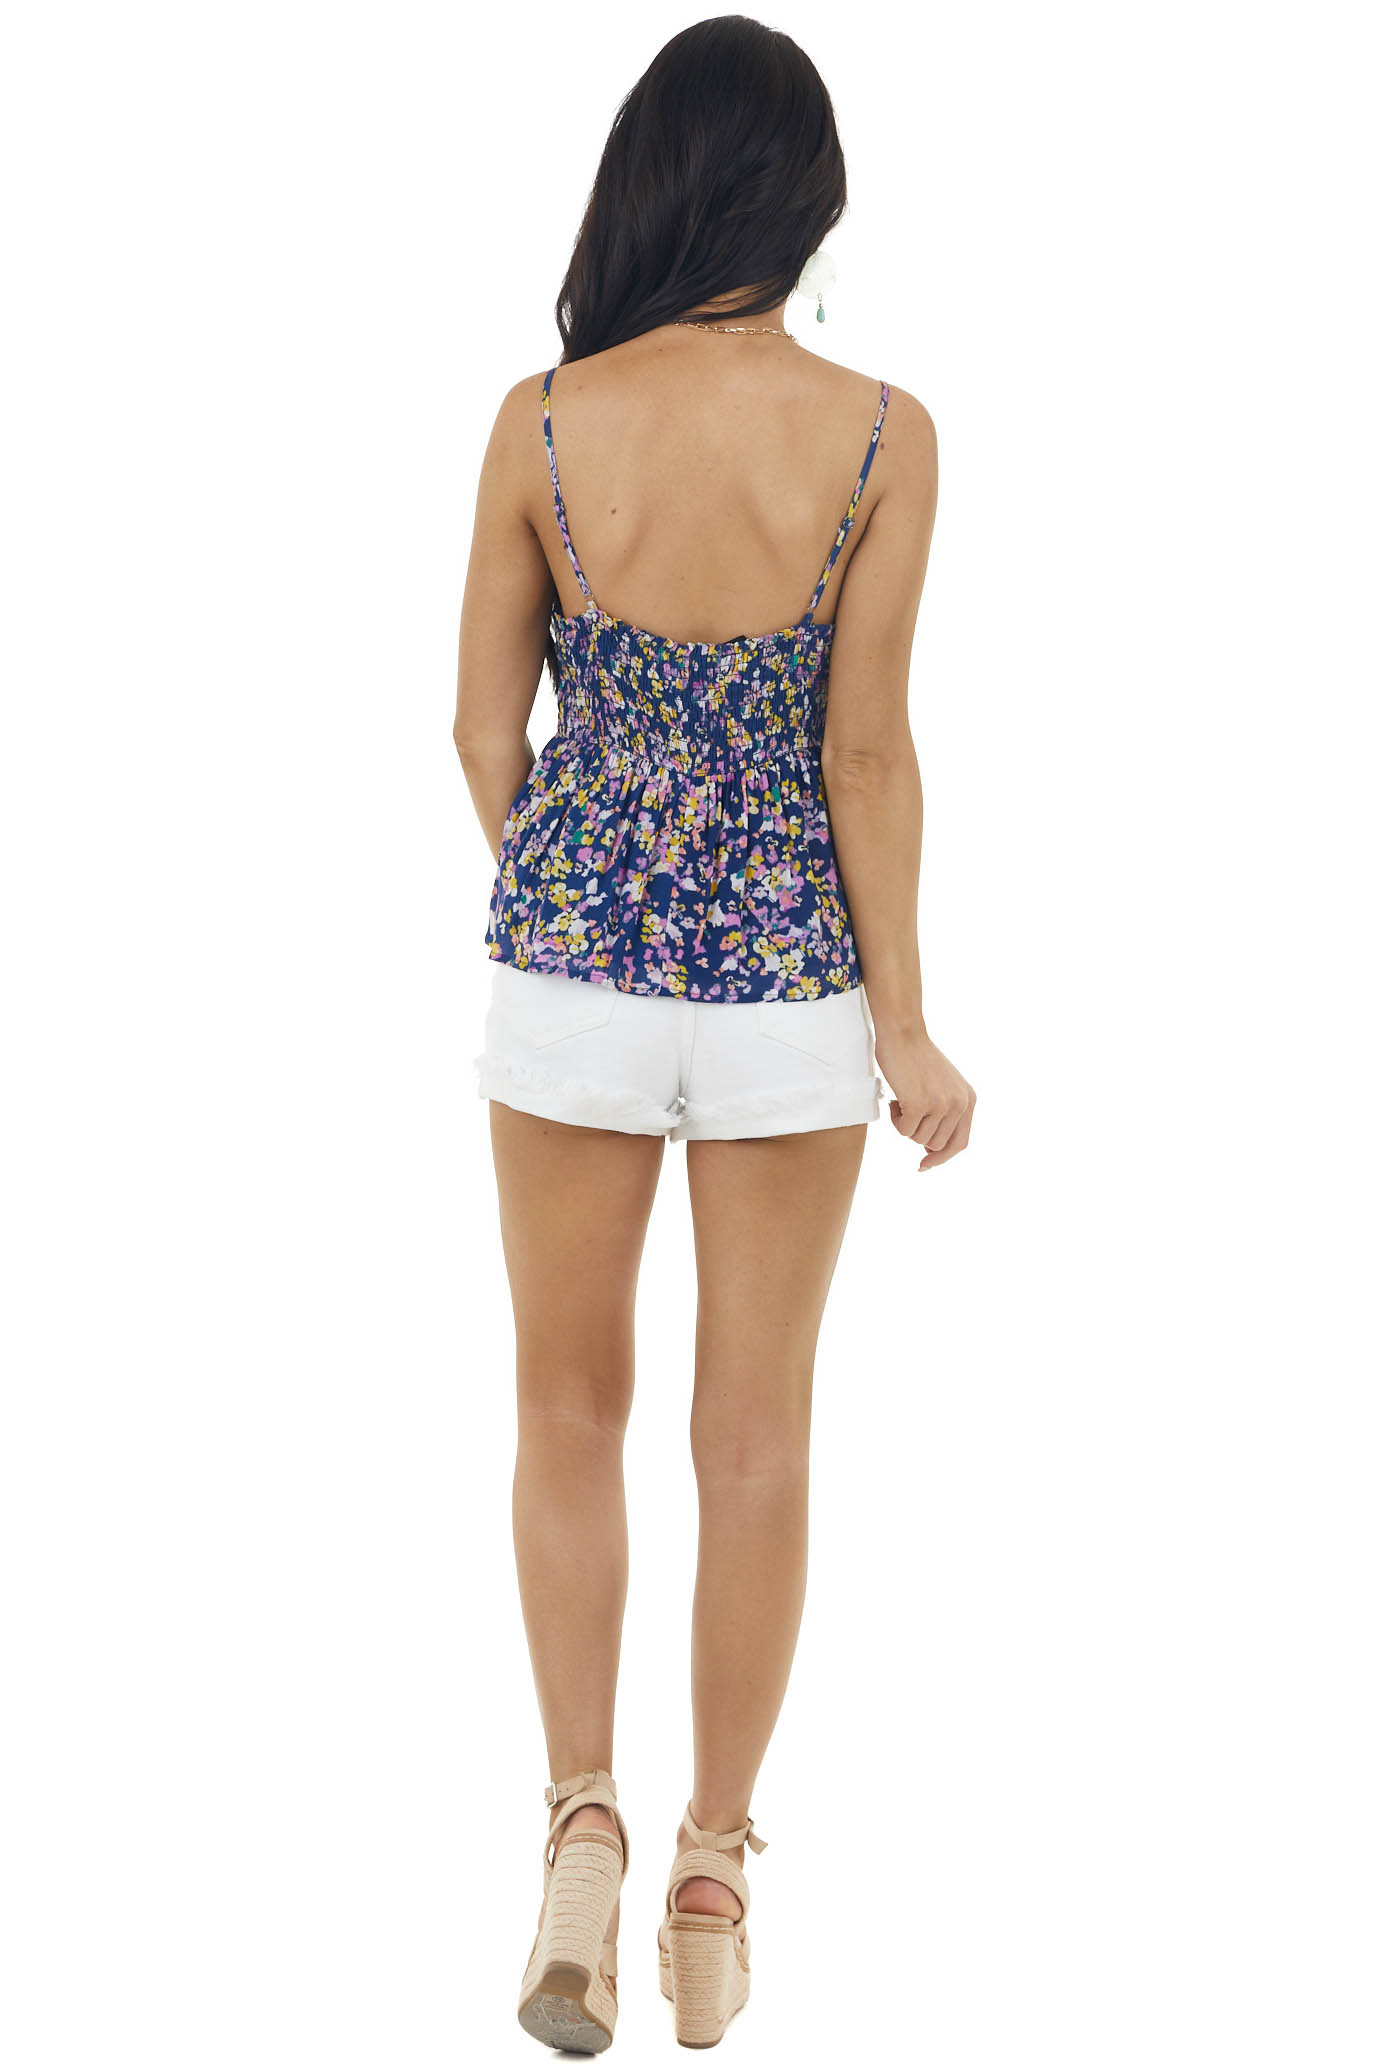 Rich Navy Blue Floral Woven Tank Top with Button Details